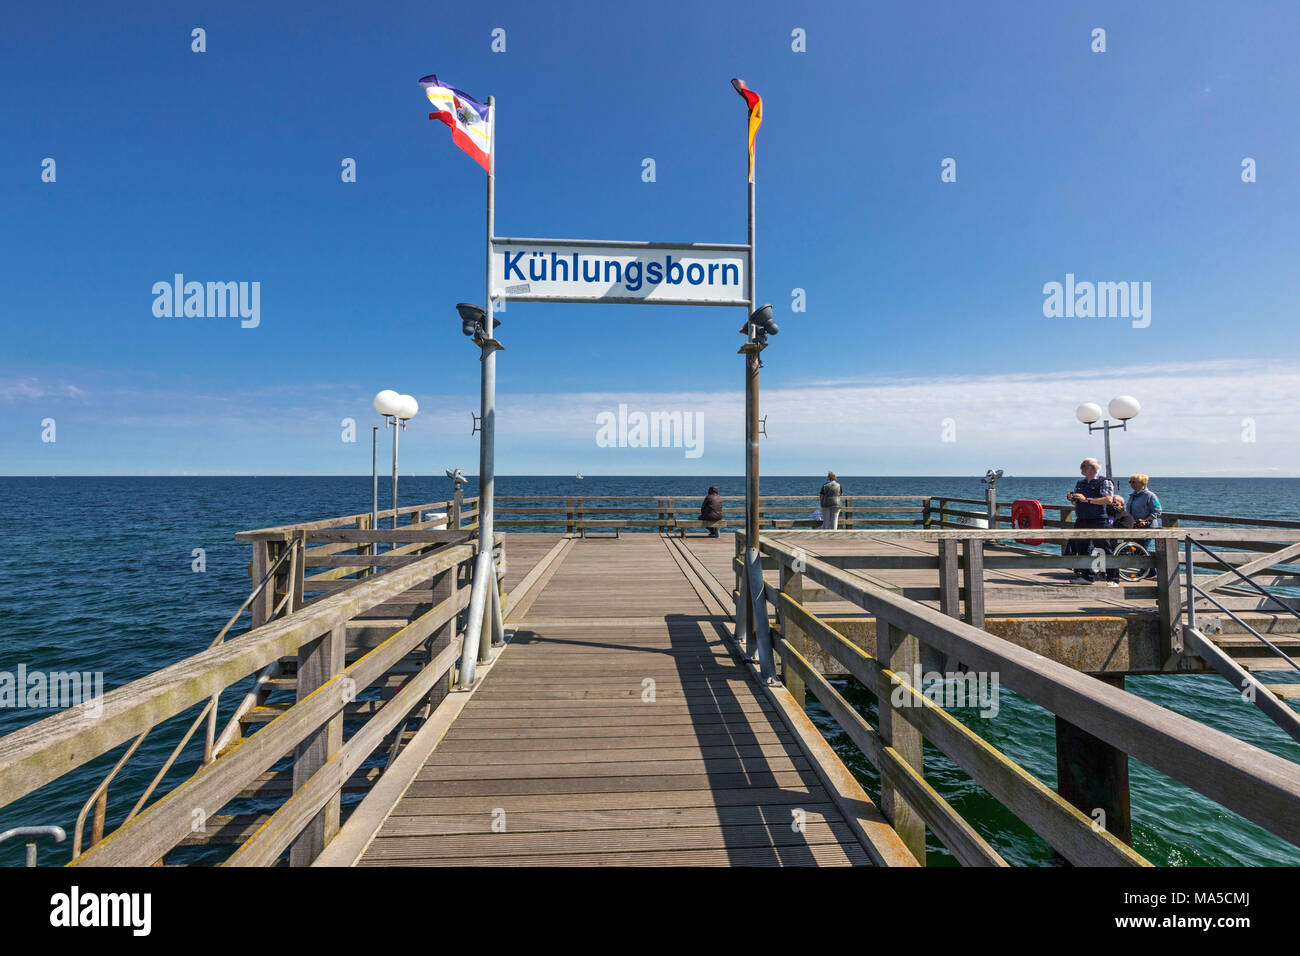 On the pier, welcome sign, Seebad Kühlungsborn-Ost, district of Rostock, - Stock Image